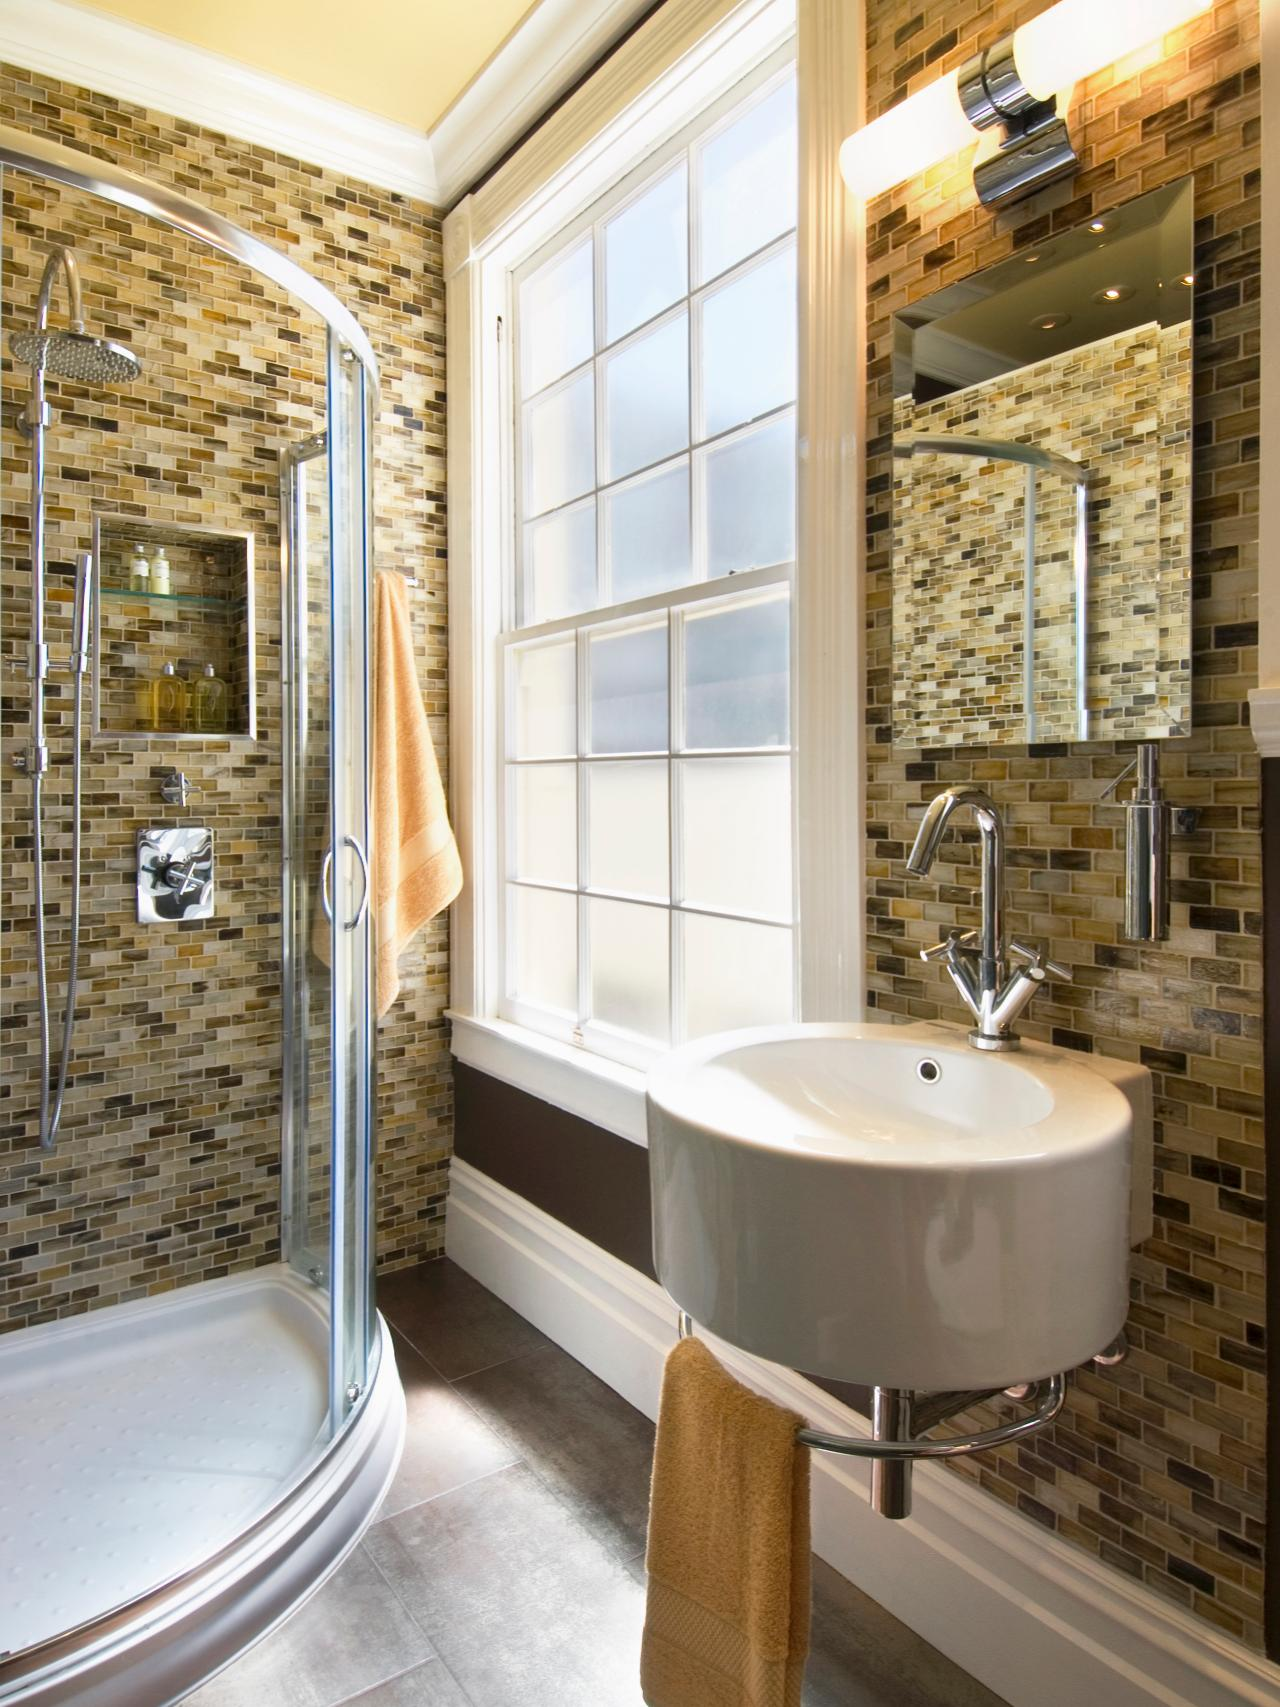 Small bathrooms big design hgtv - Pictures of bathroom designs ...